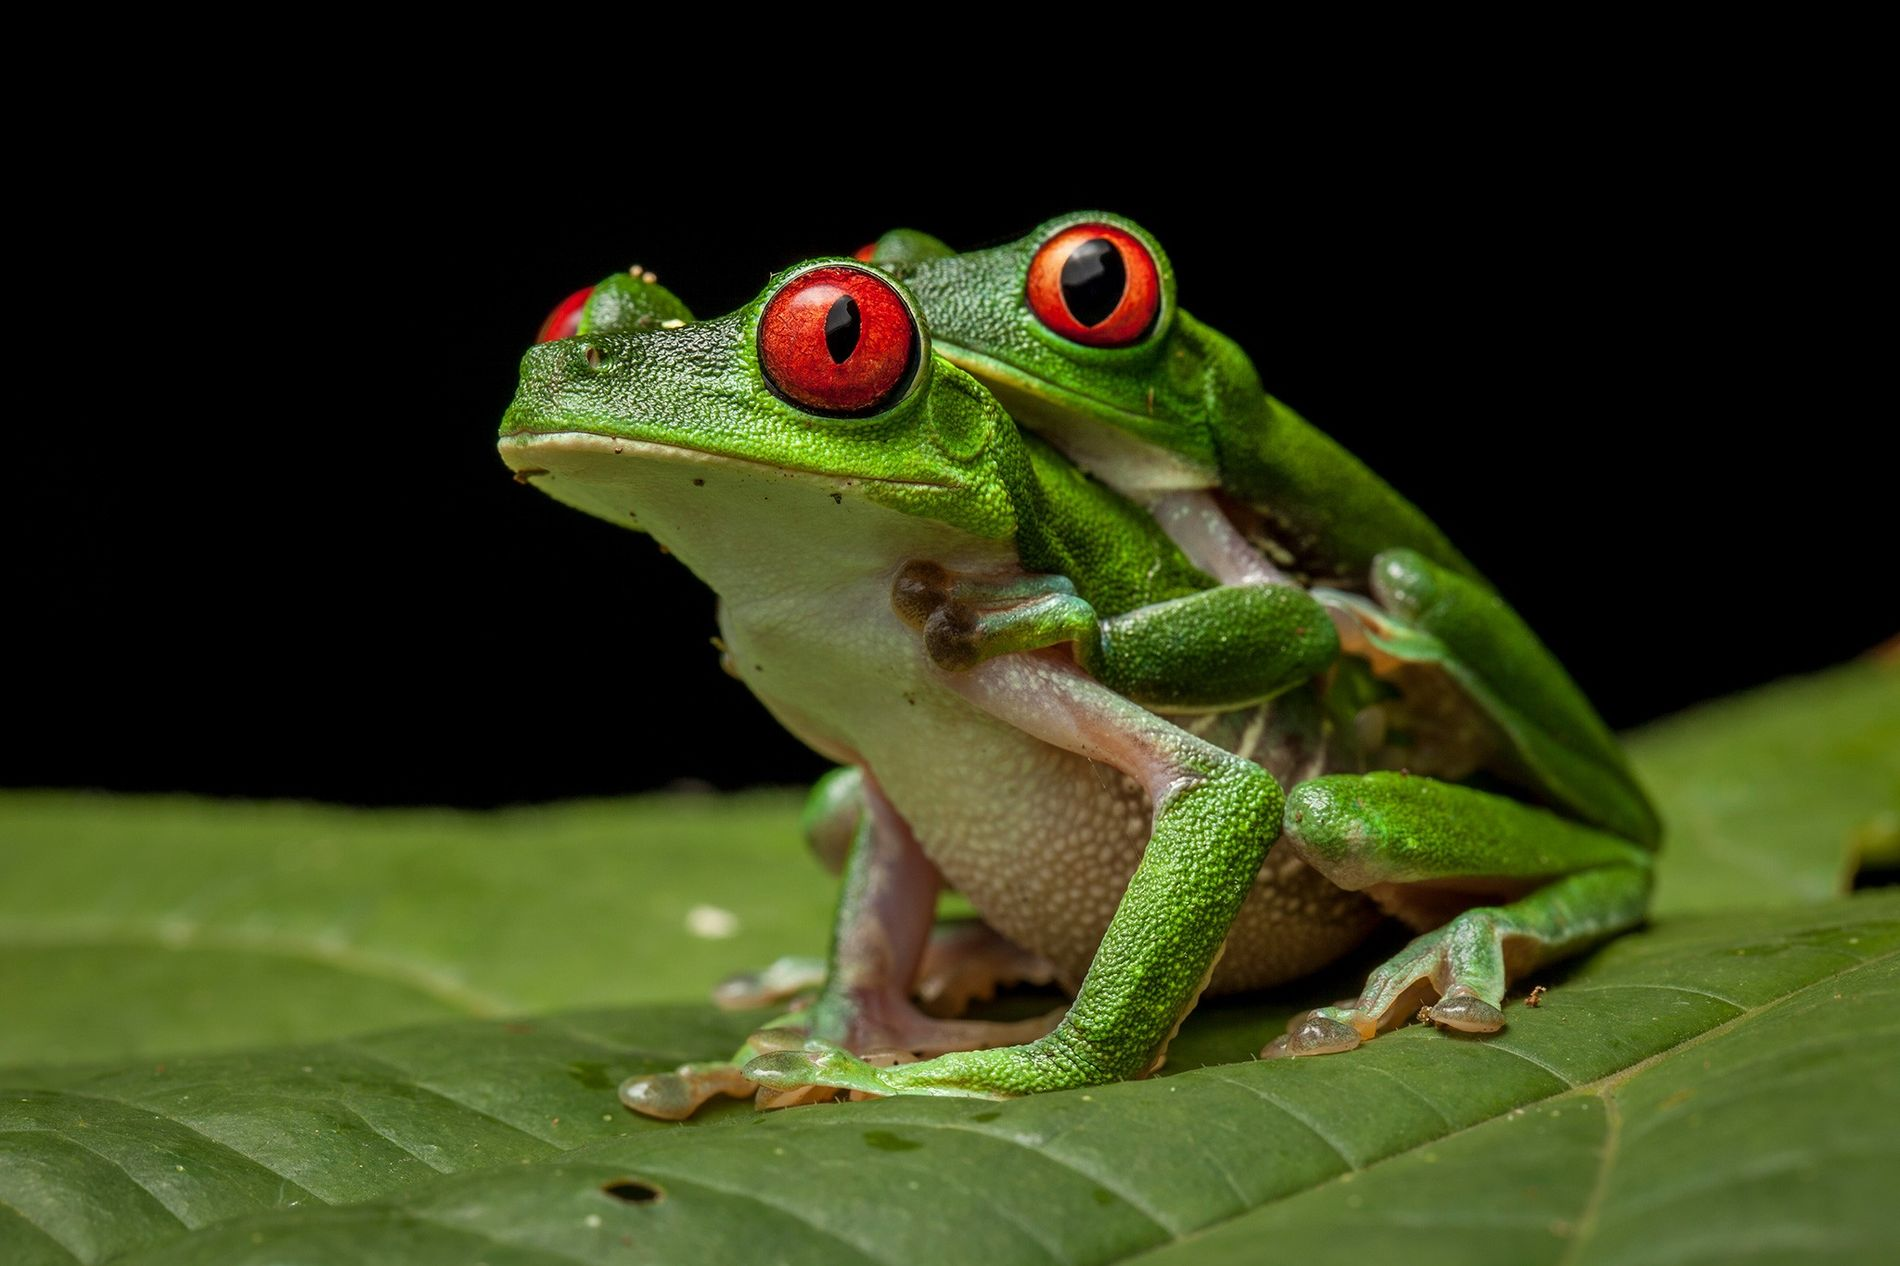 For many frogs, the ultimate romantic gesture is a long hug known as amplexus. Shown here ...